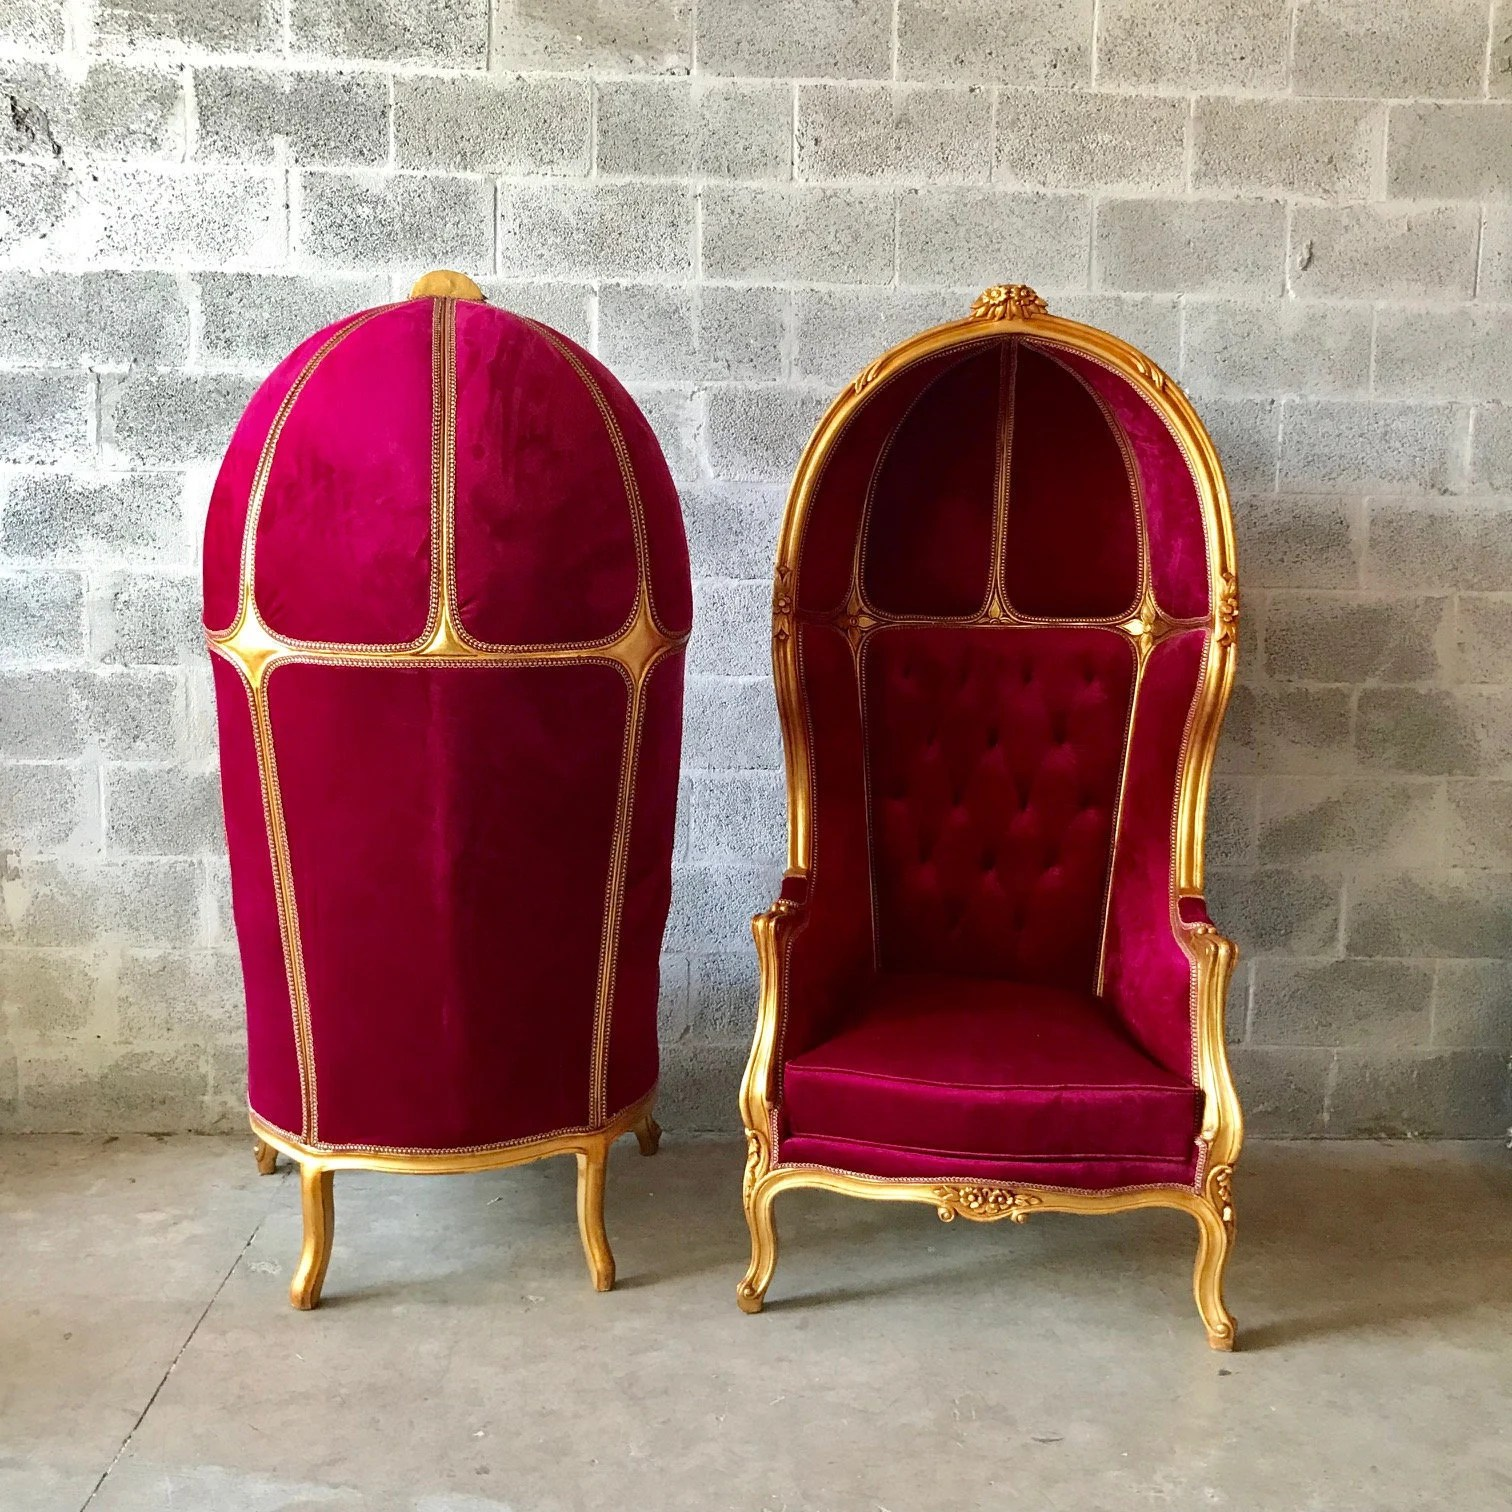 french velvet chair pottery barn irving reviews balloon throne reproduction dark red gallery photo